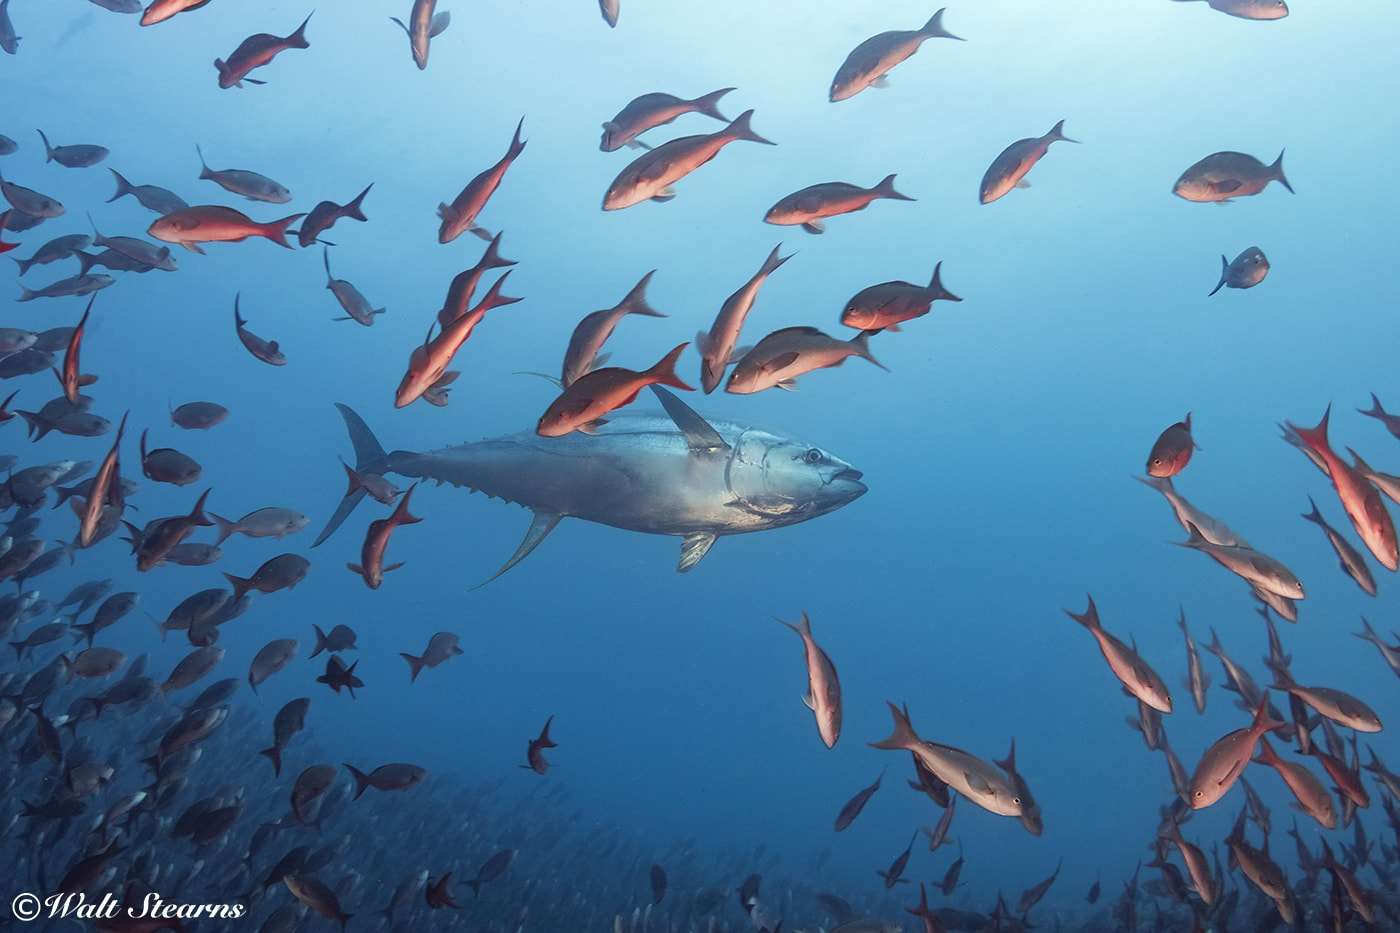 The Galapagos Islands are one of the few dive destinations where there is a good chance of seeing open-water species such as yellowfin tuna.